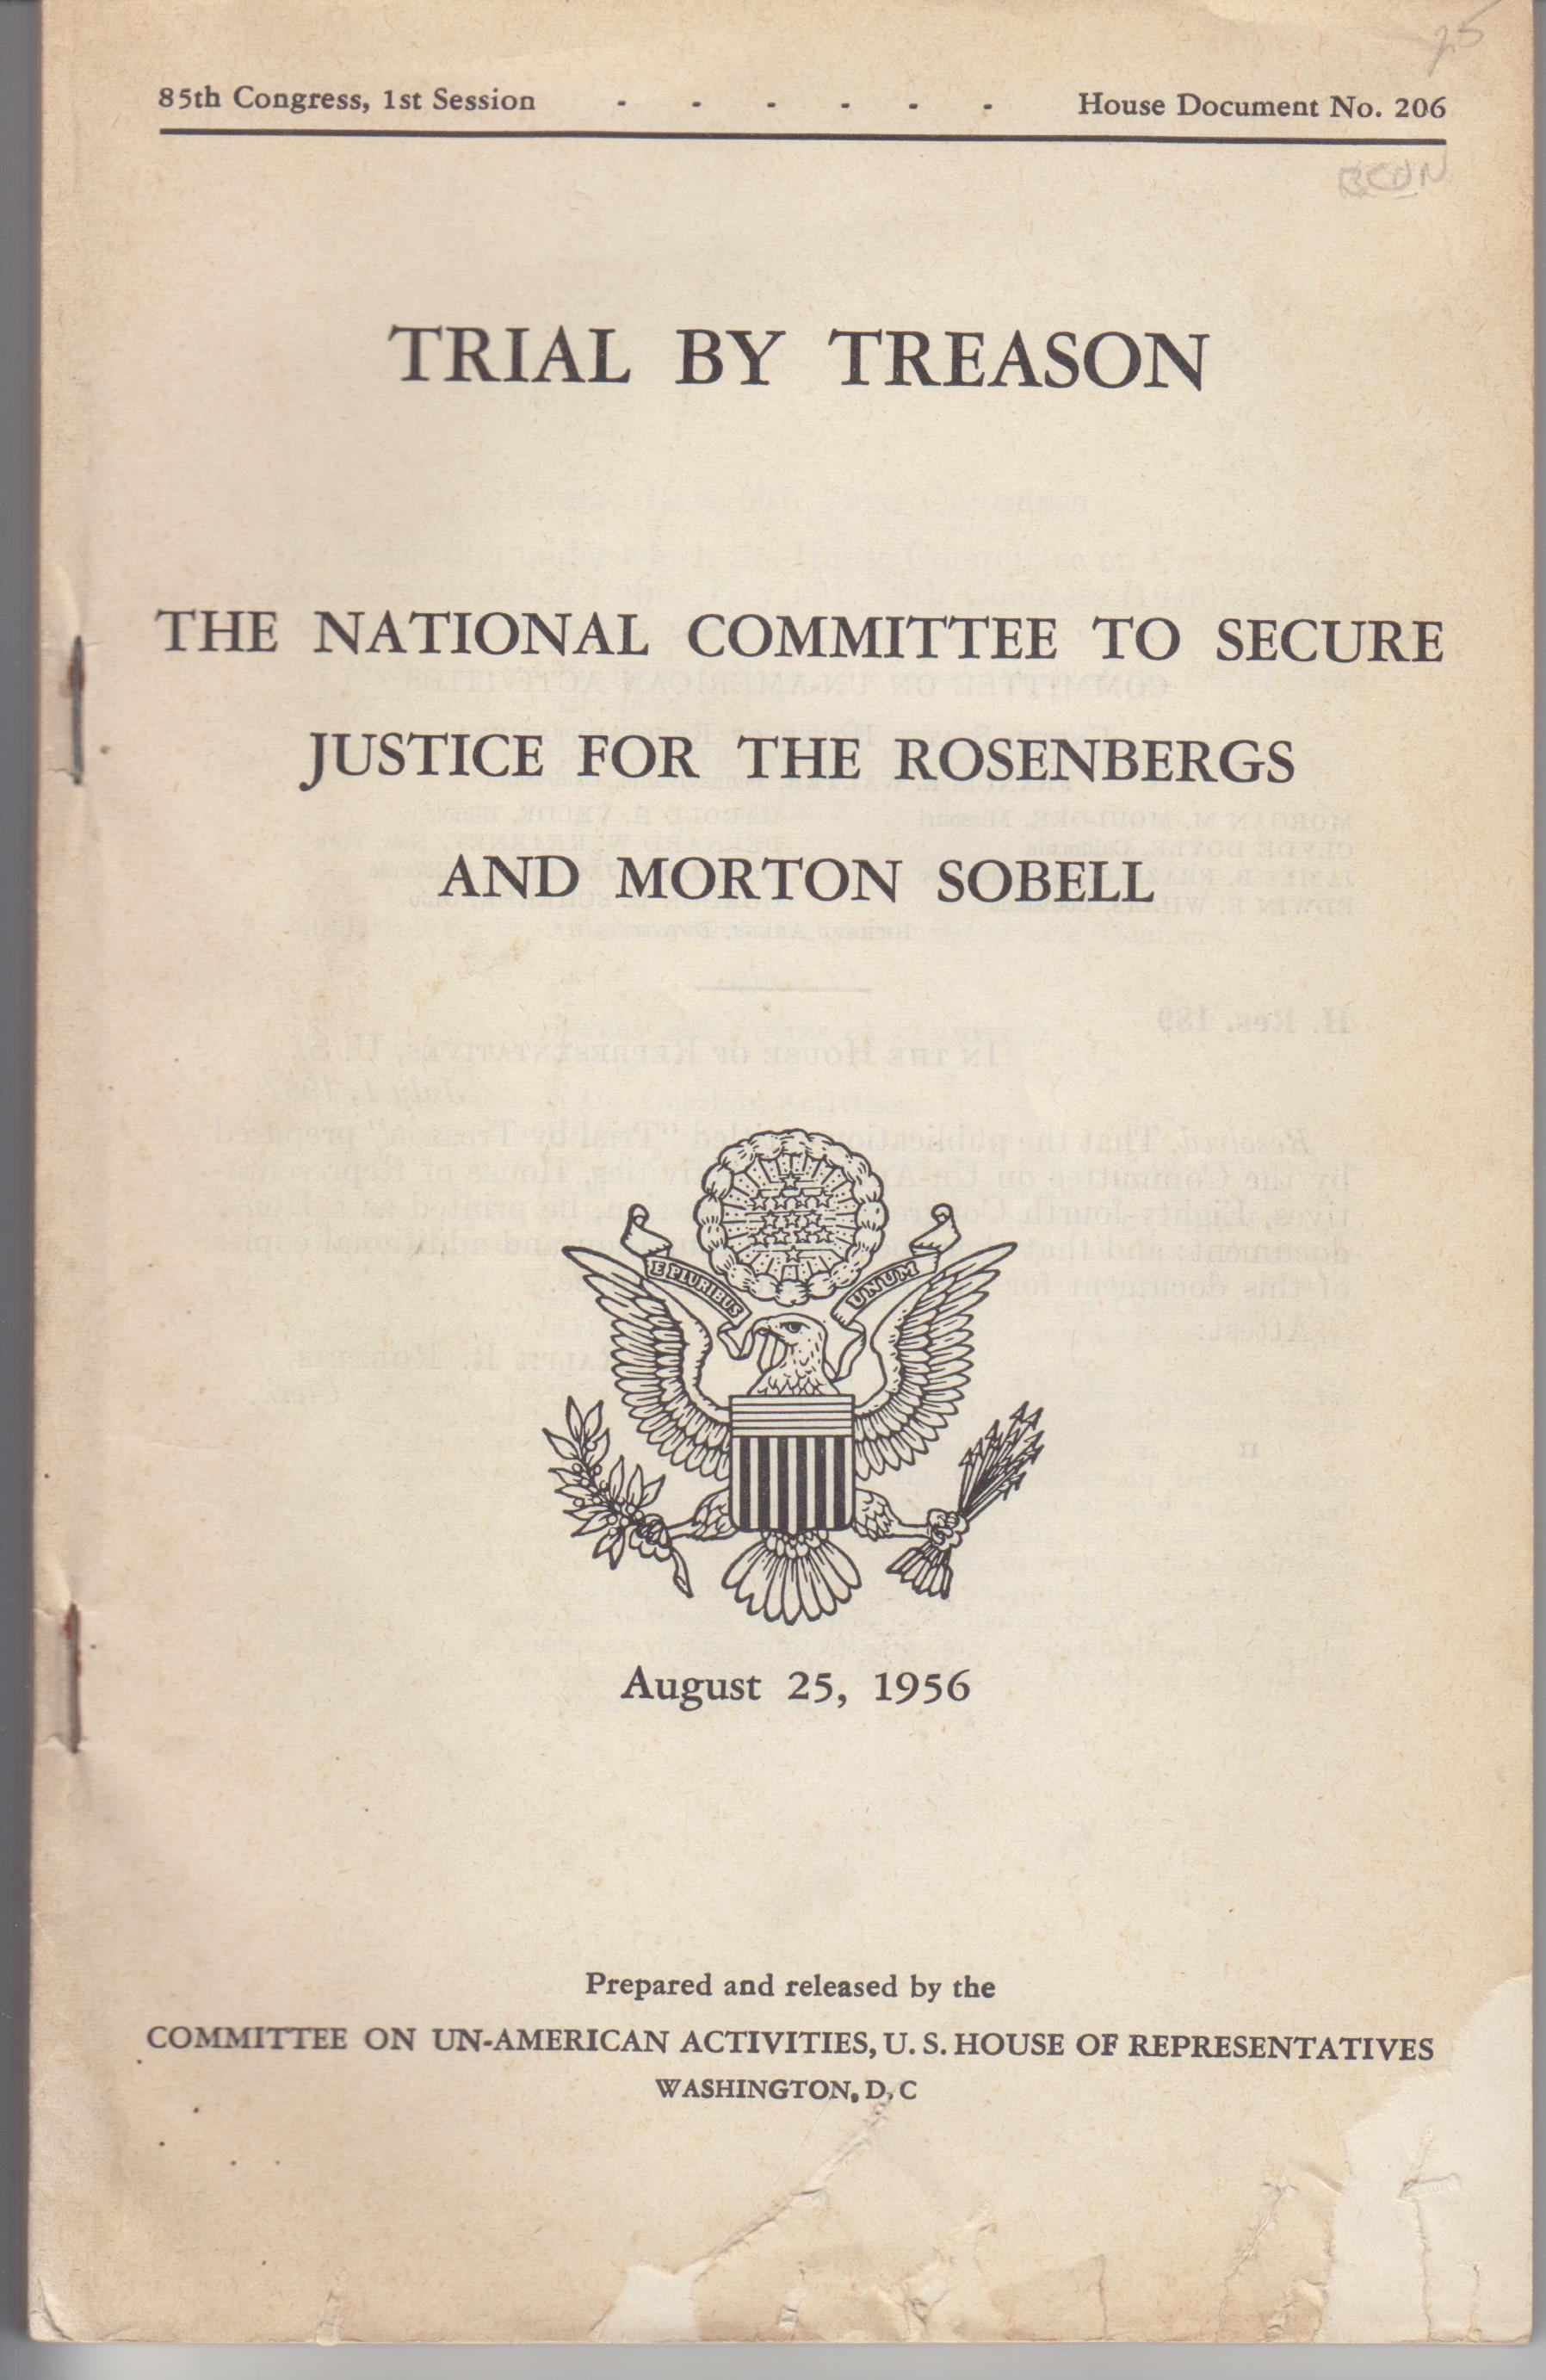 Image for Trial By Treason. The National Committee to Secure Justice for the Rosenbergs and Morton Sobell, August 2 6, 1956